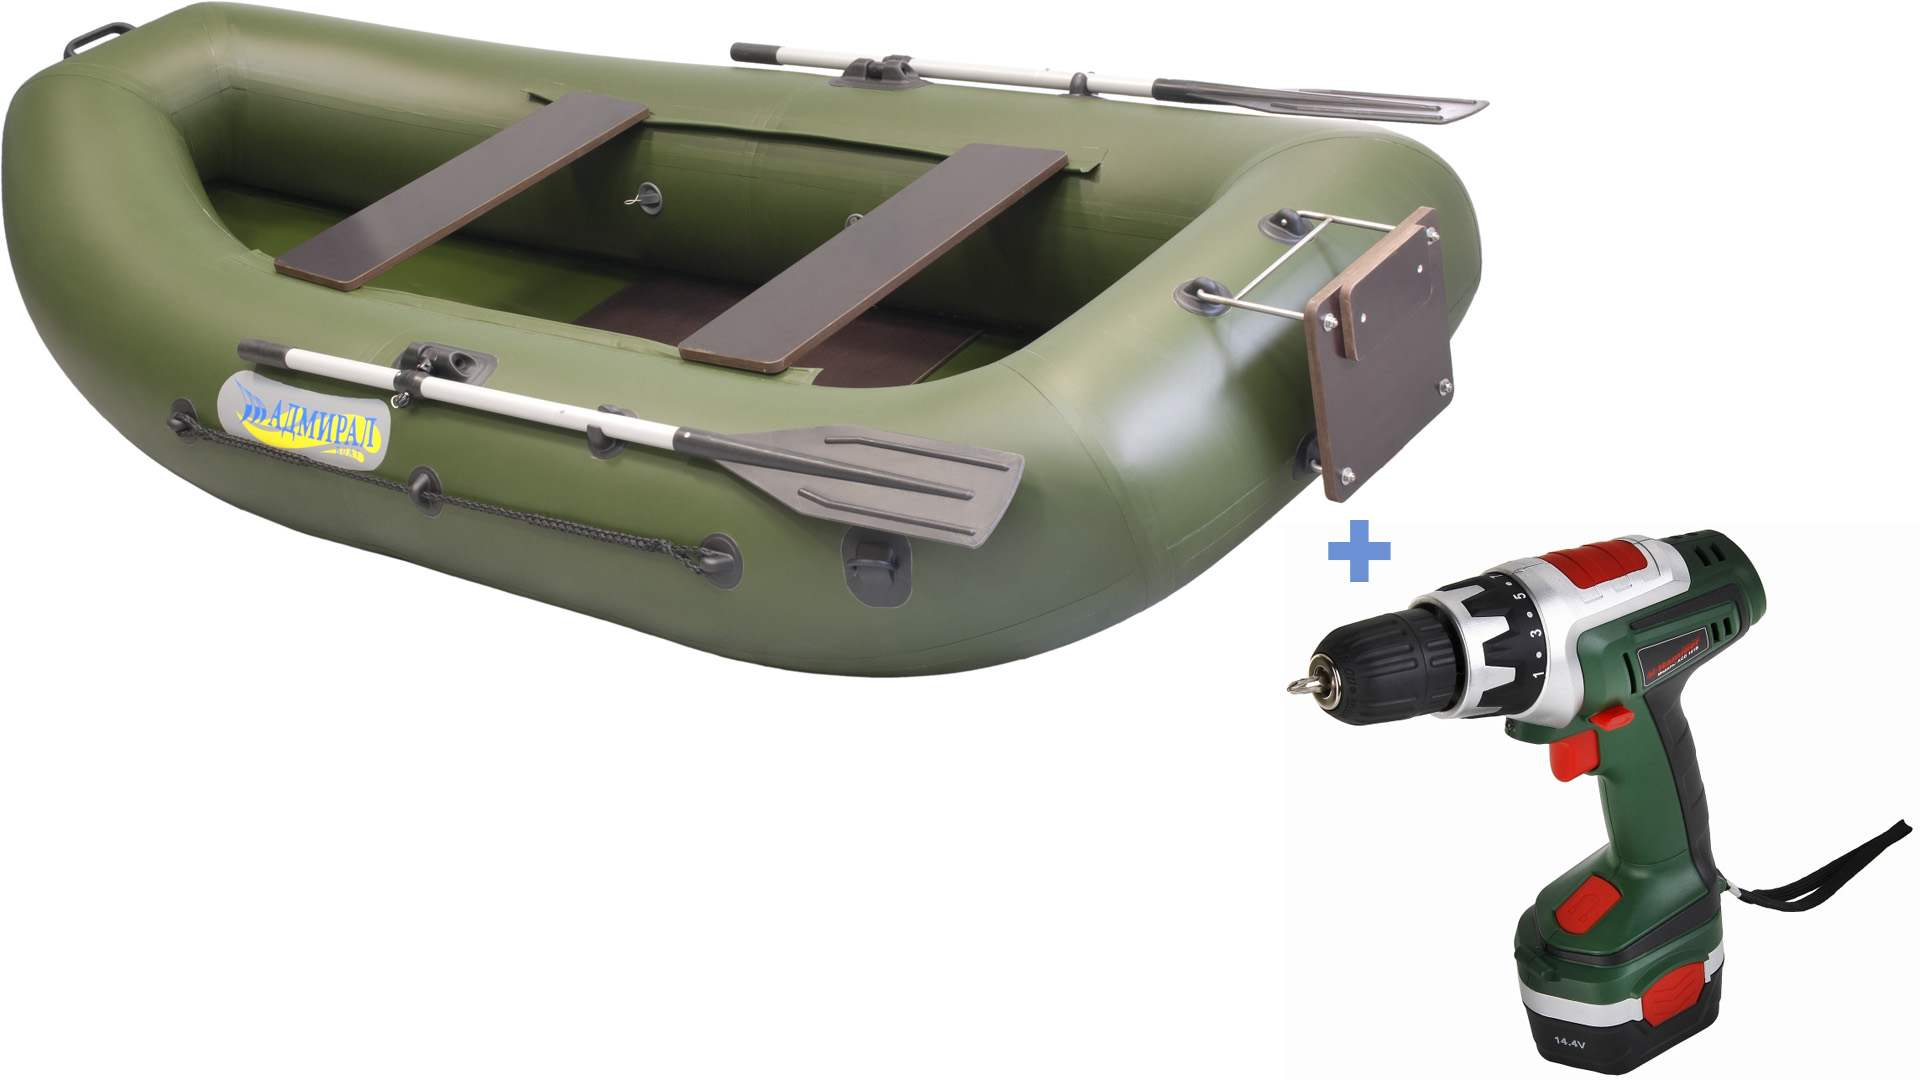 MOTOR TO AN INFLATABLE BOAT